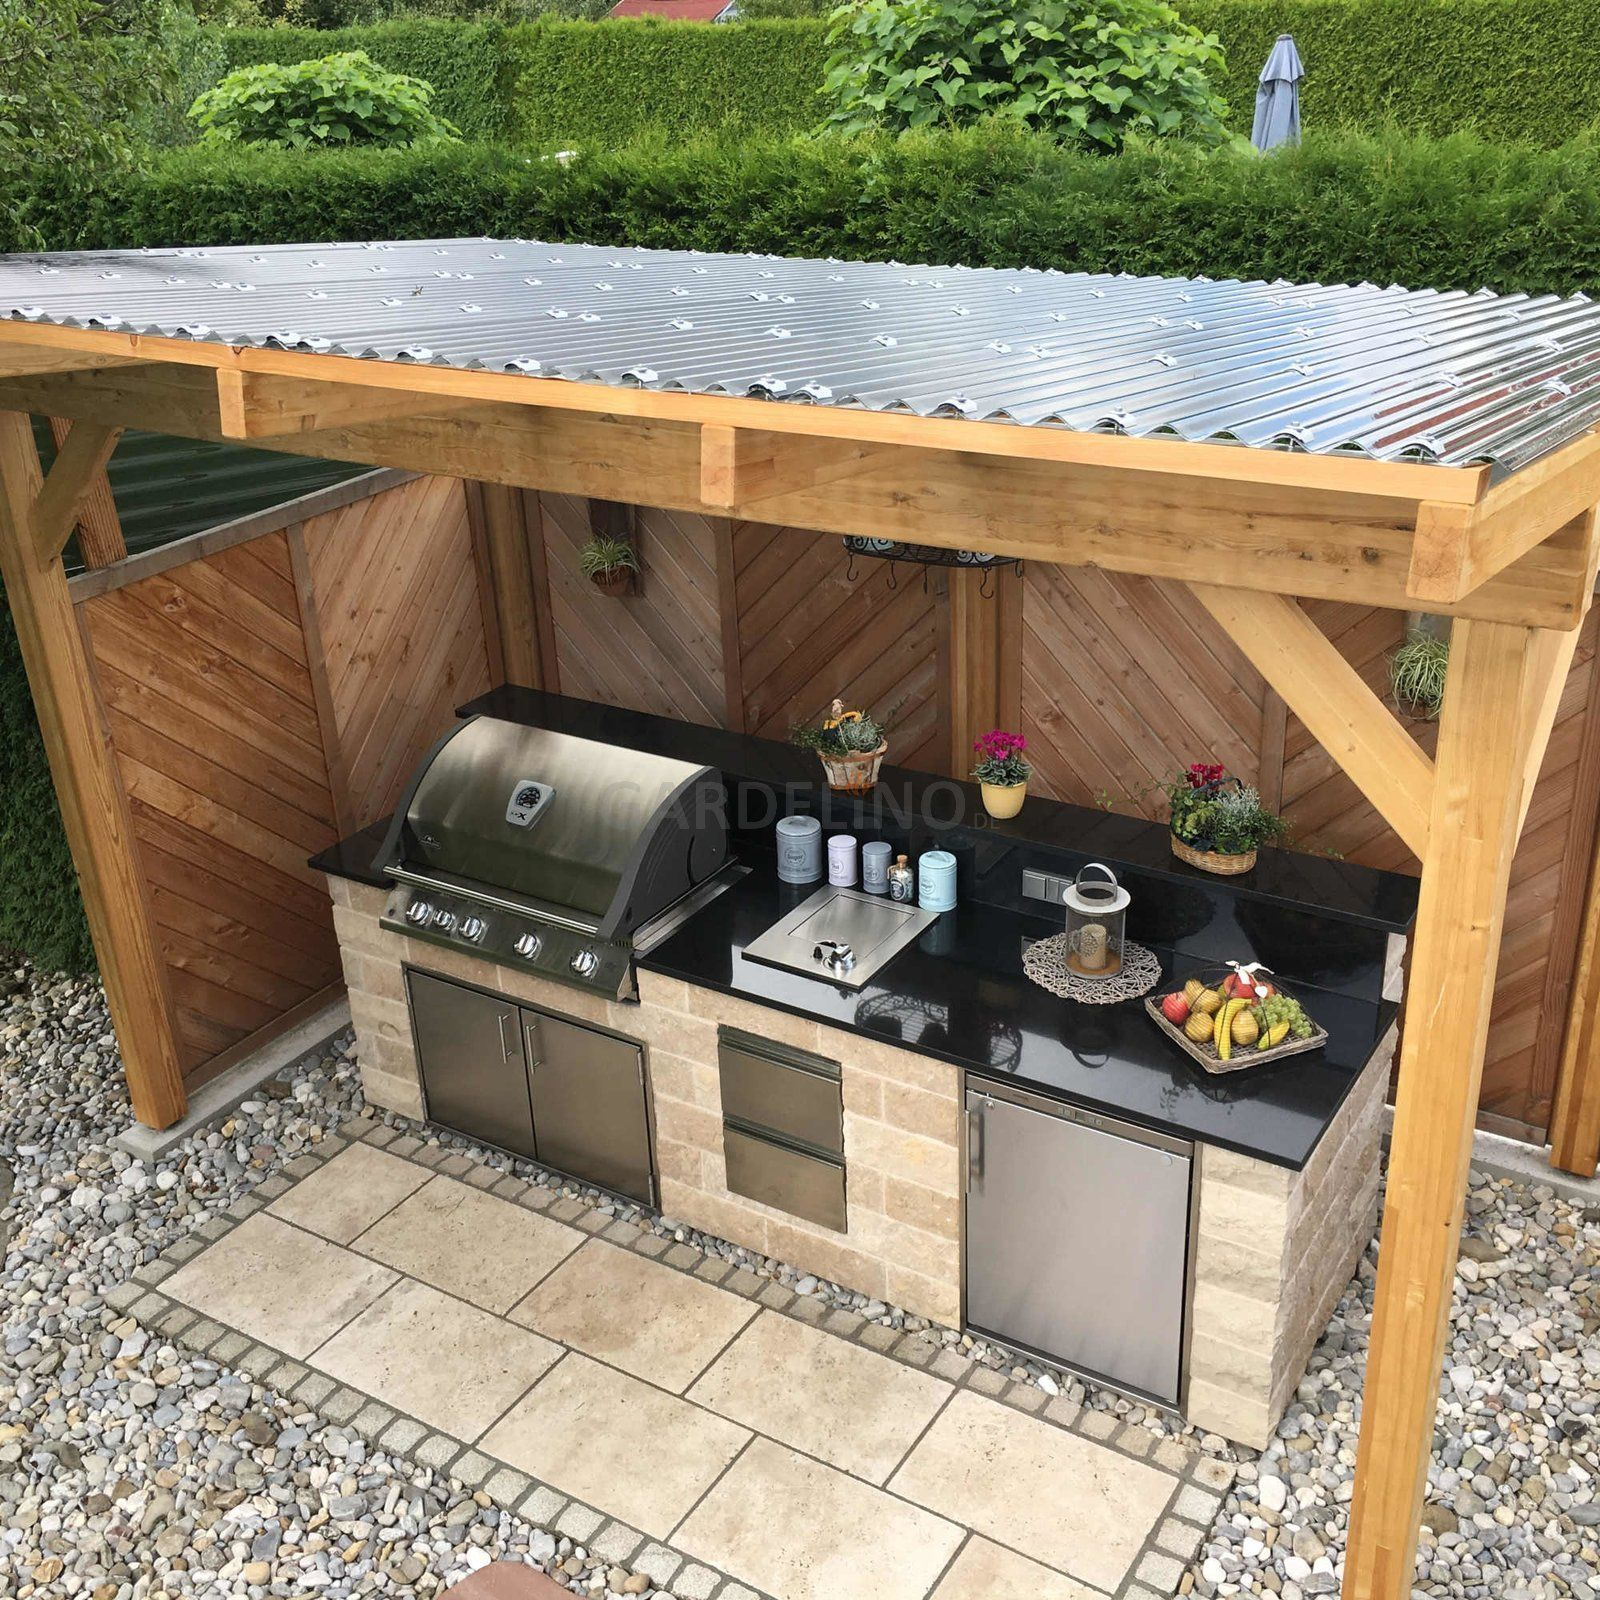 best amazing outdoor kitchen ideas design for small space on a budget outdoor kitchen decor on outdoor kitchen ideas on a budget id=92321